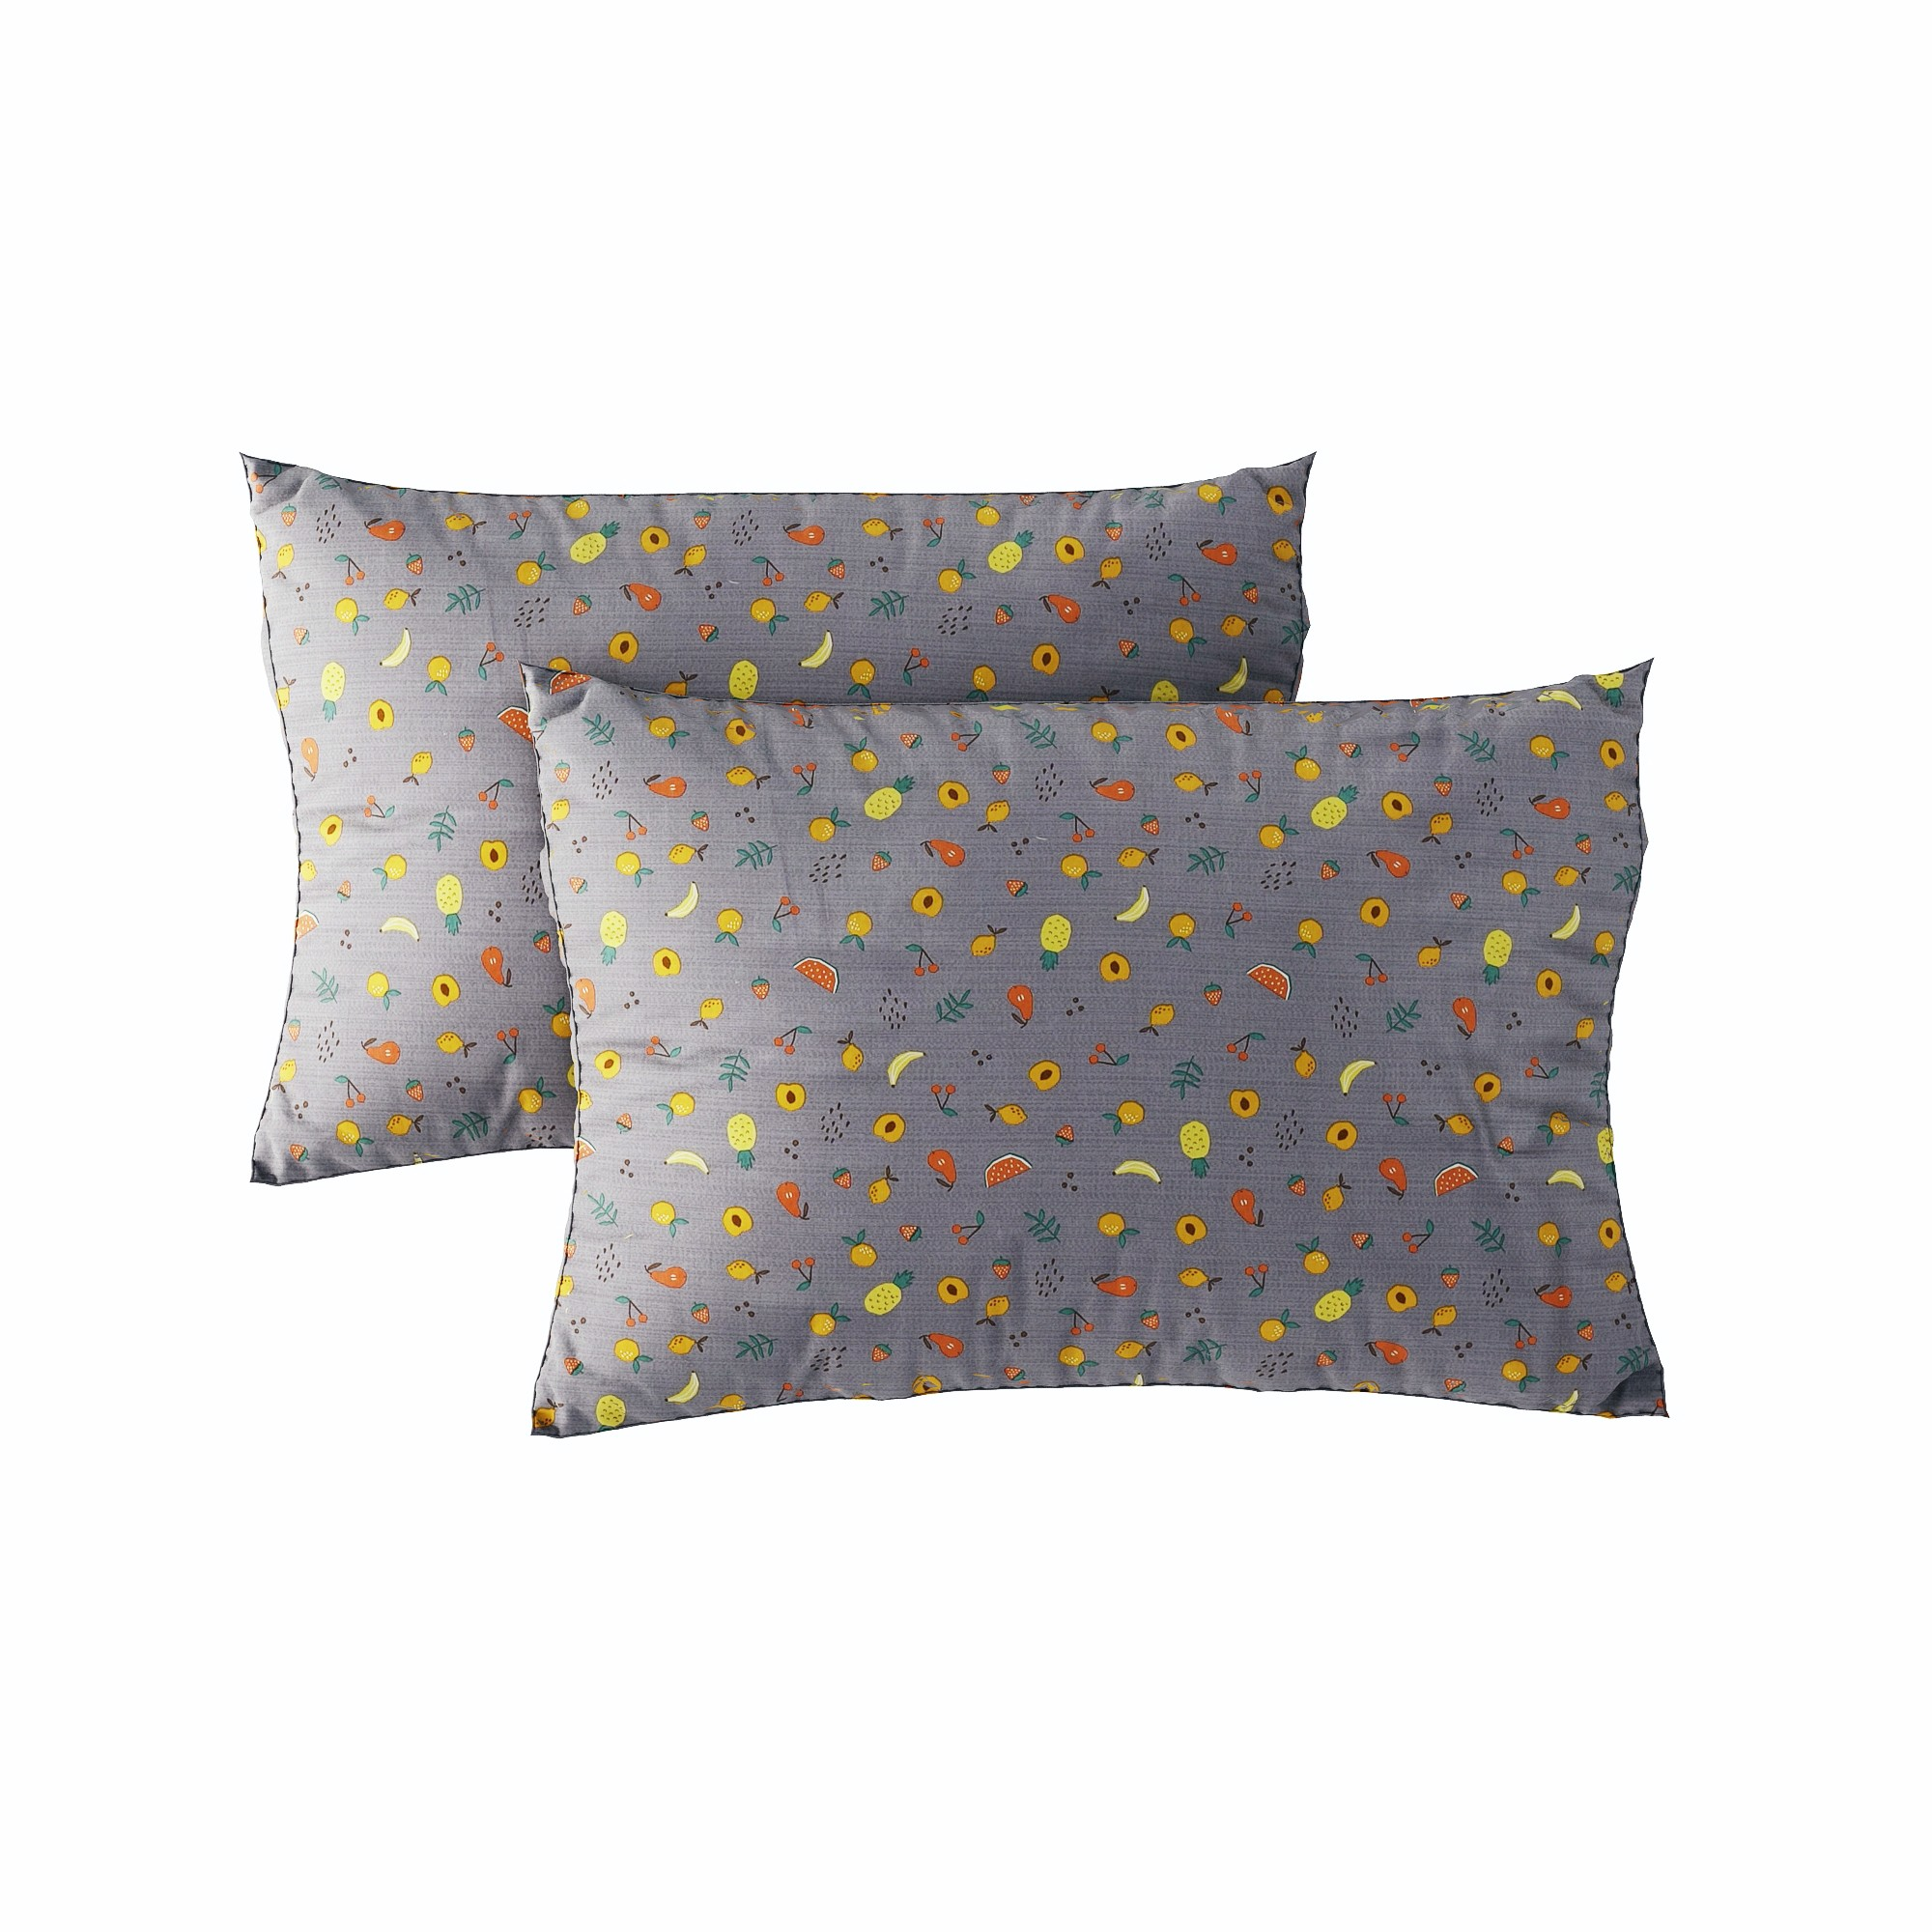 Pillow case 236 Tropical fruits on grey